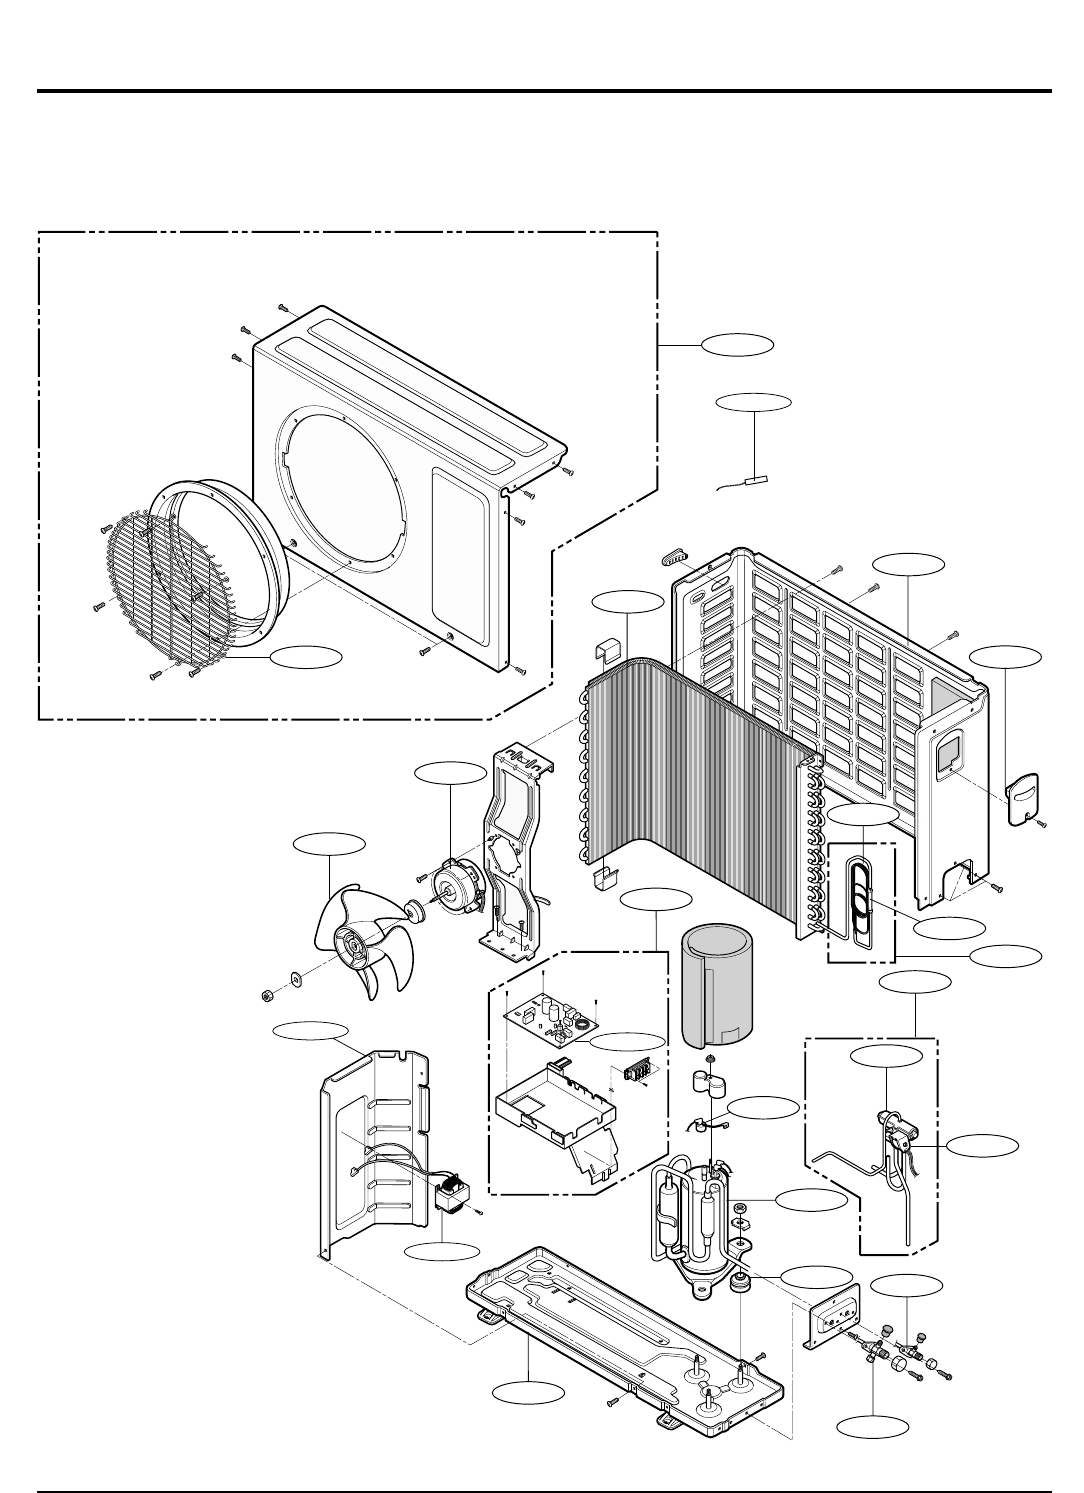 Page 81 of LG Electronics Air Conditioner AS-W126URH1/UBH1